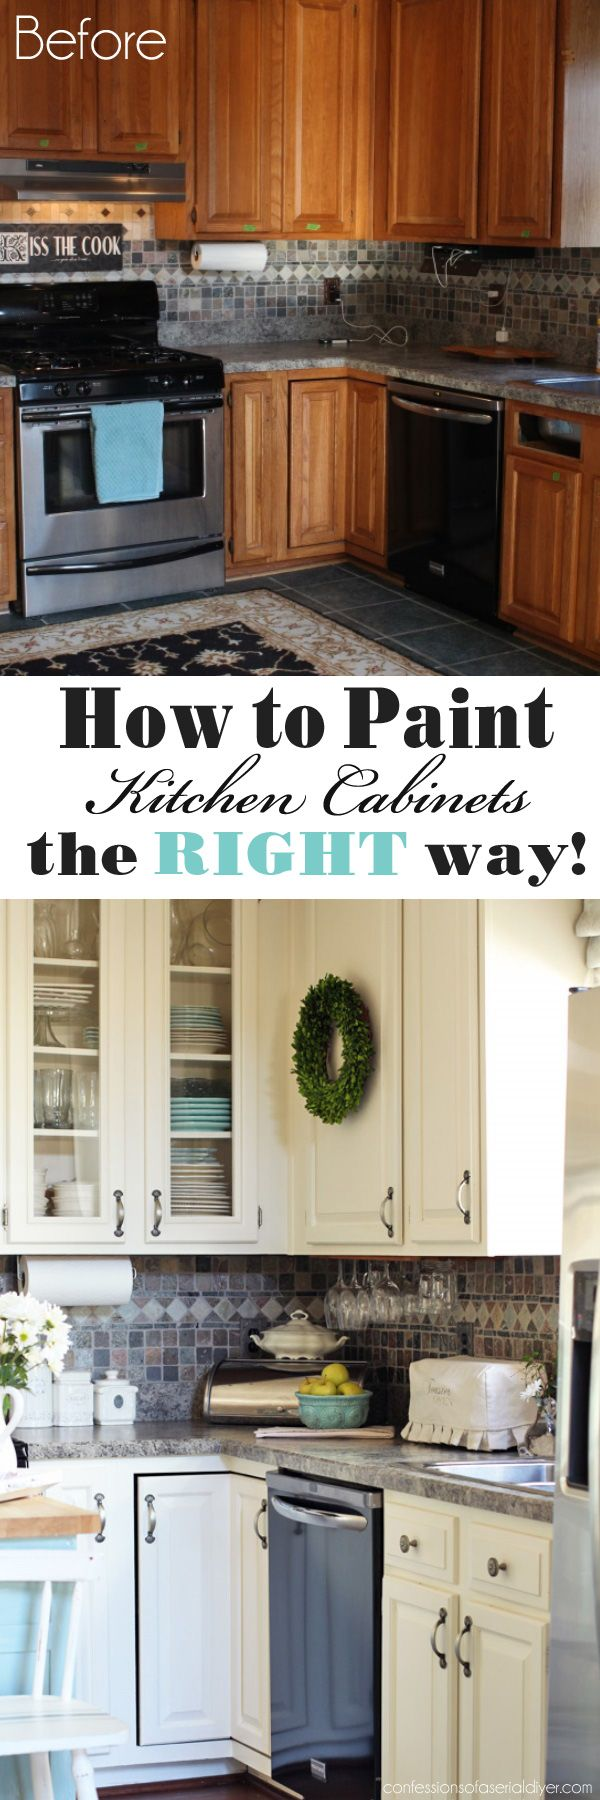 best 25+ kitchen cabinet makeovers ideas on pinterest | kitchen